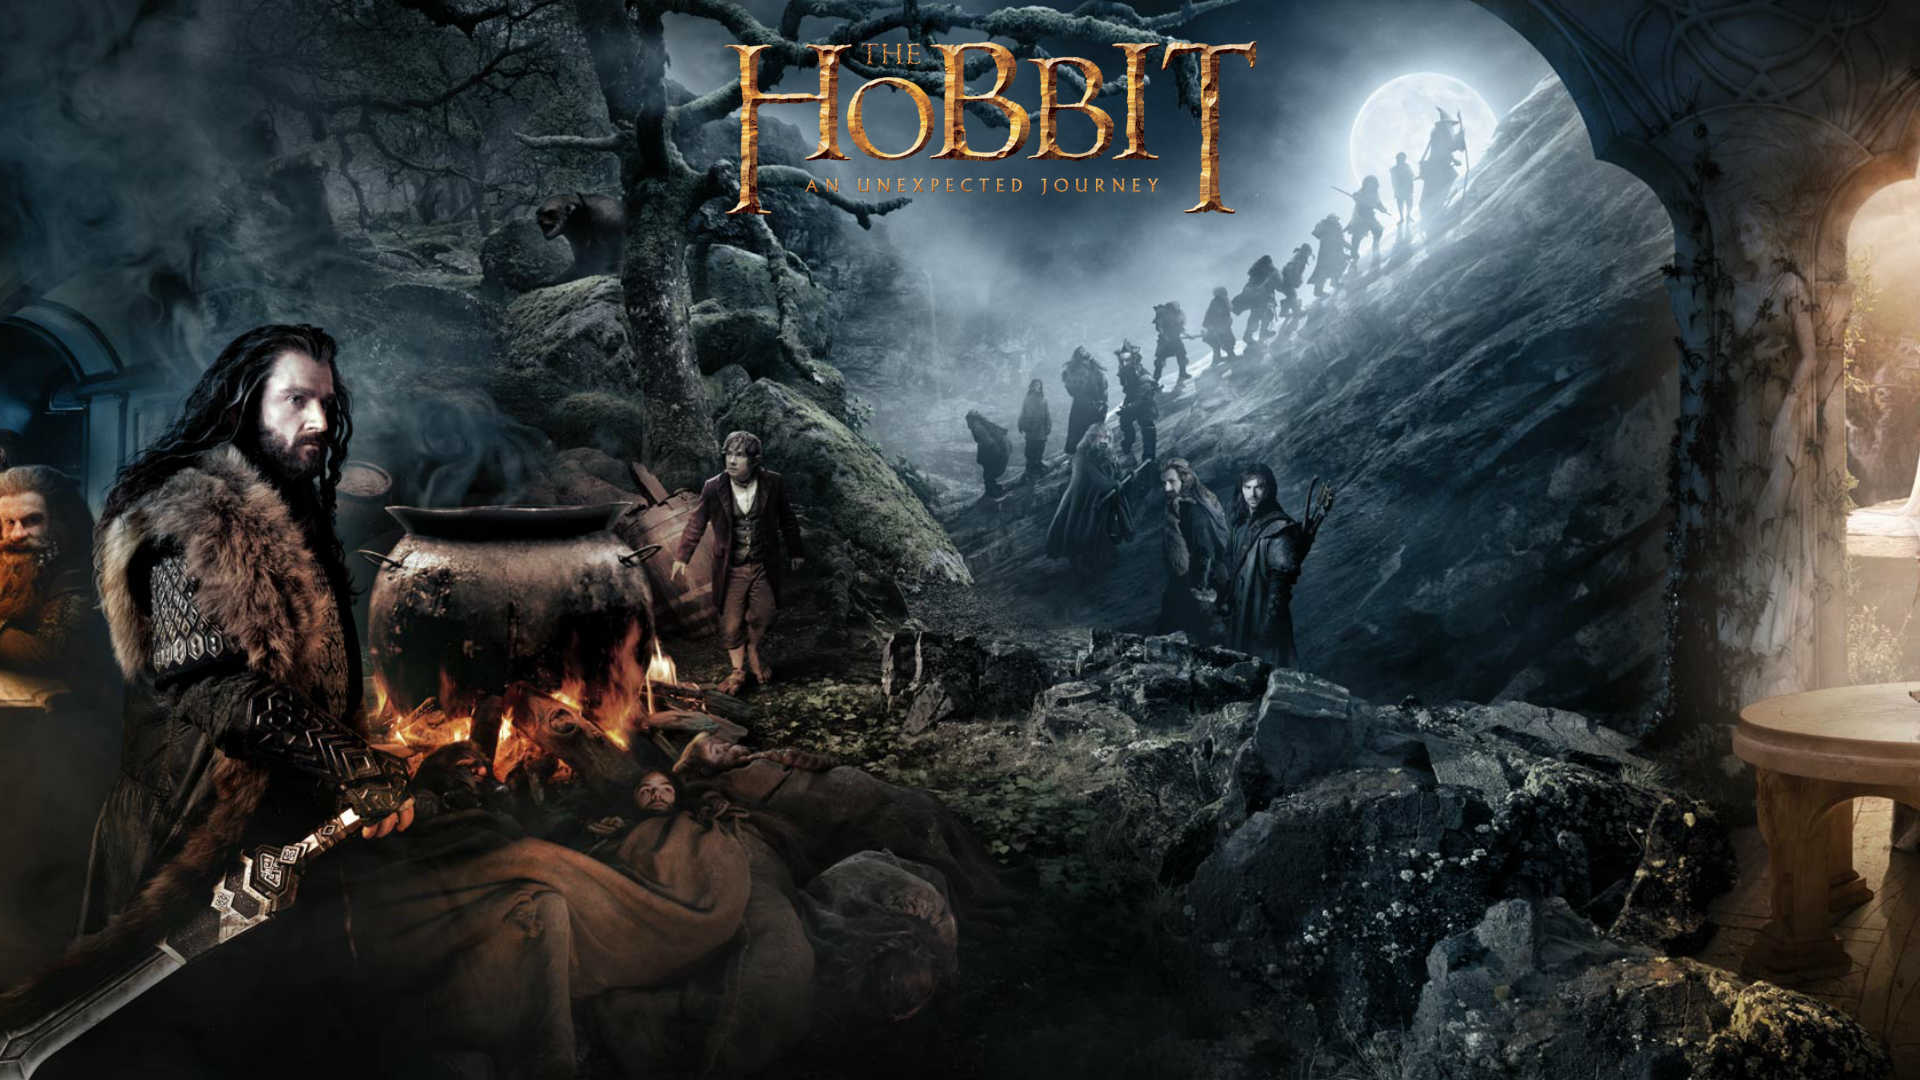 Wallpapers The hobbit - Taringa!